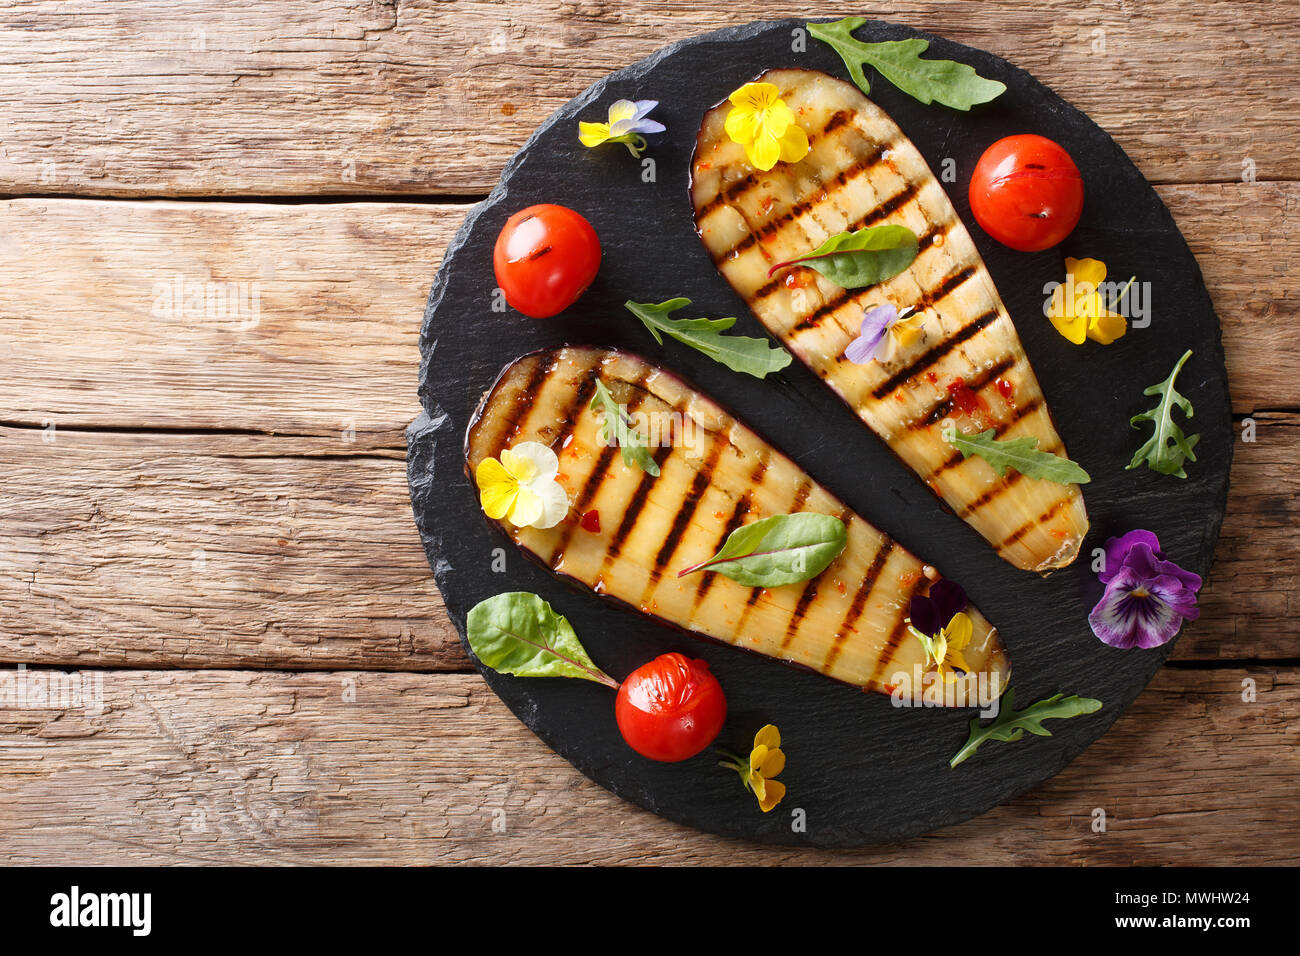 Portion of grilled eggplant and tomato with herbs and edible flowers close-up on the table. horizontal top view from above - Stock Image